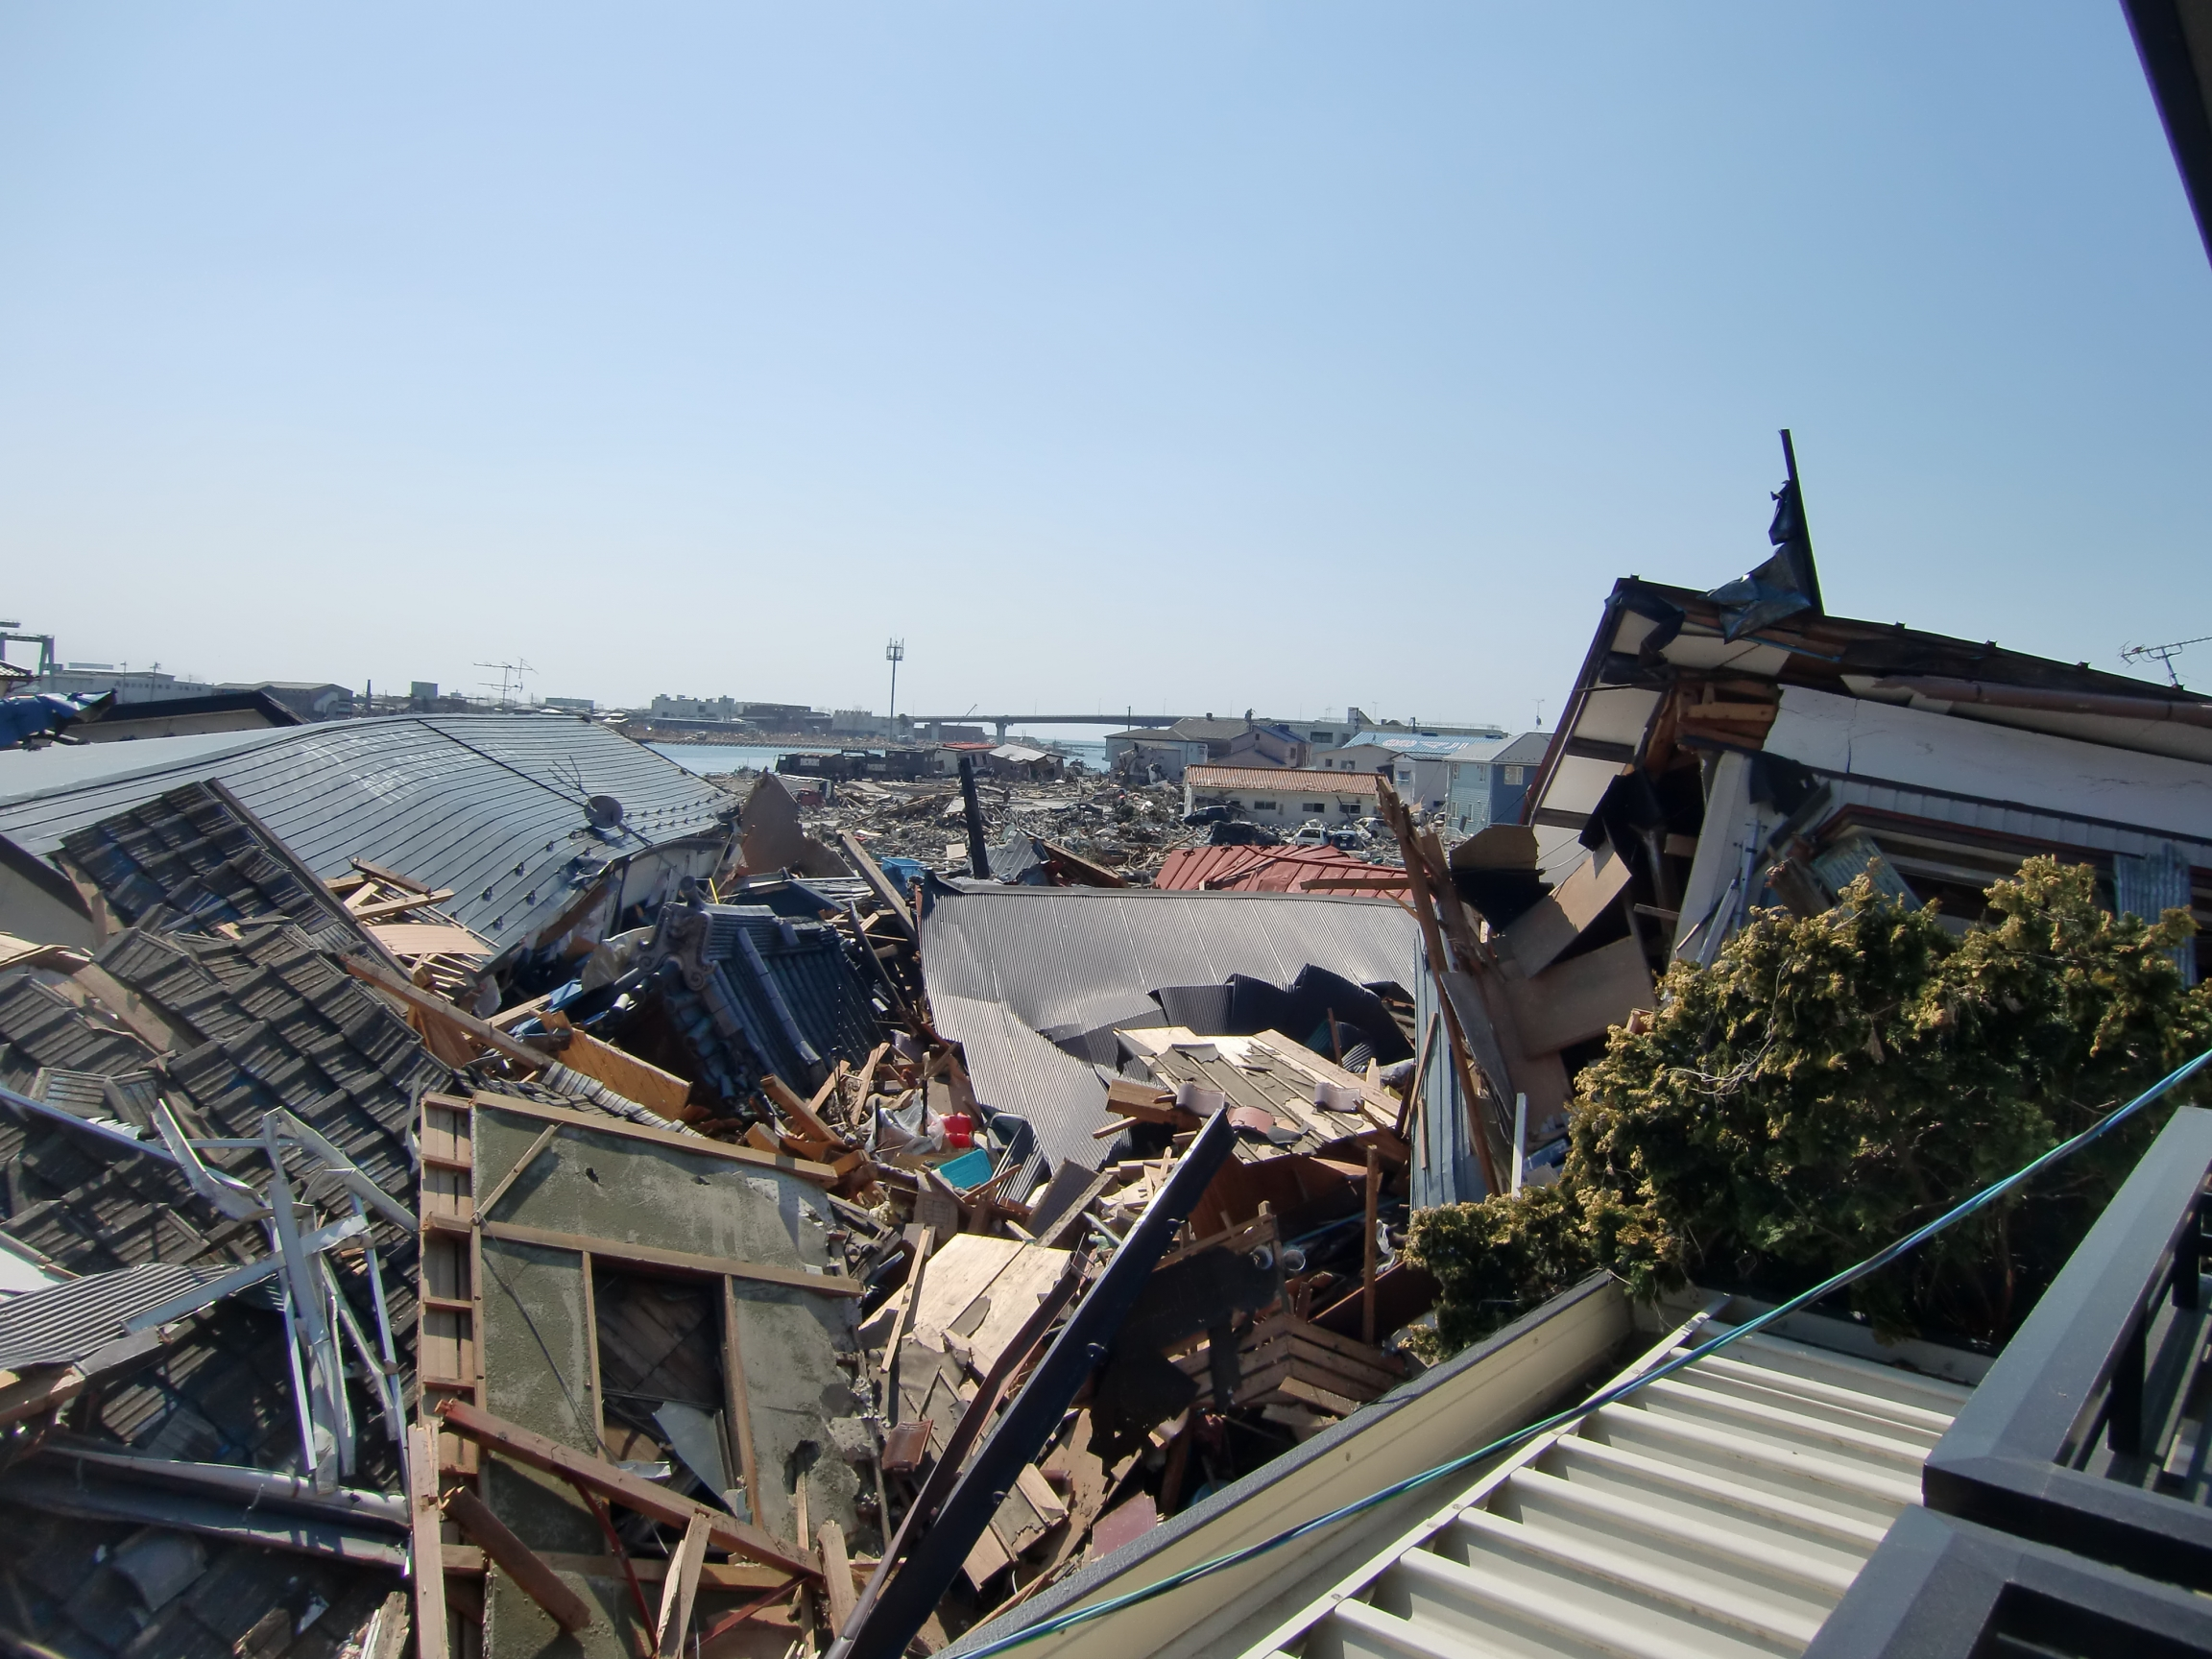 Houses are shown destroyed and collapsed on each other.